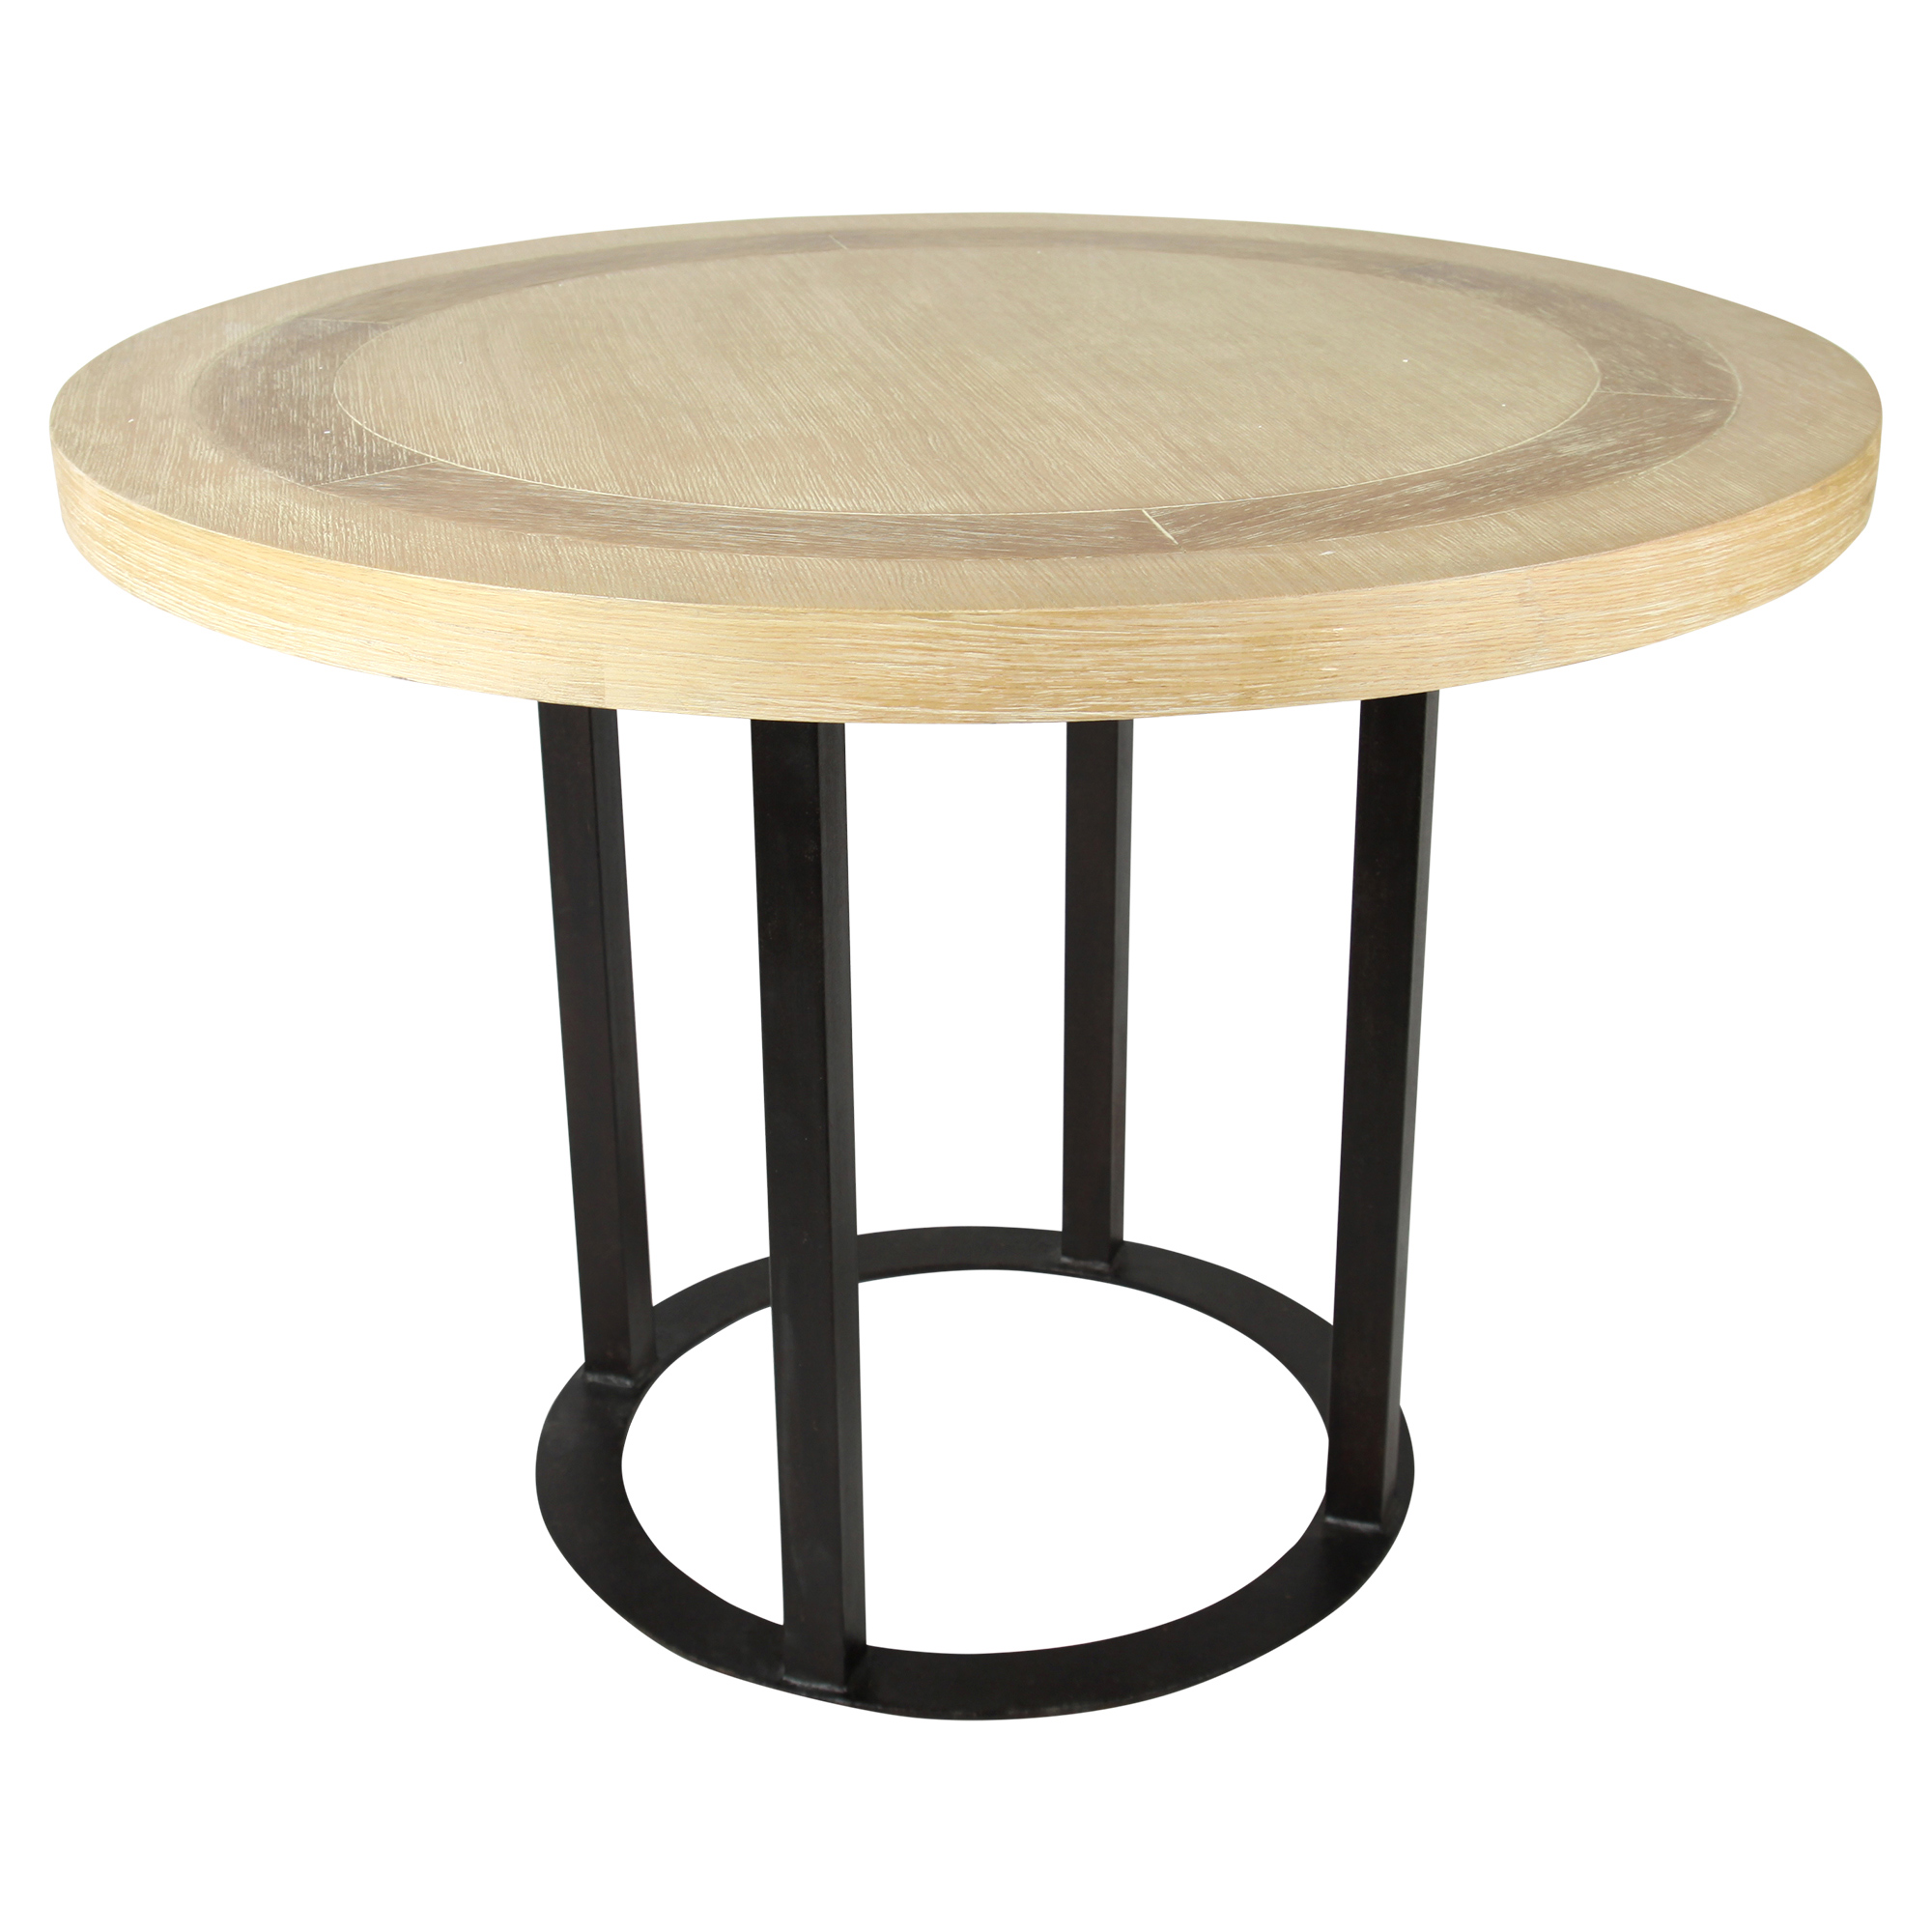 Glynn Industrial Loft Round Wood Ring Dining Table - 42D